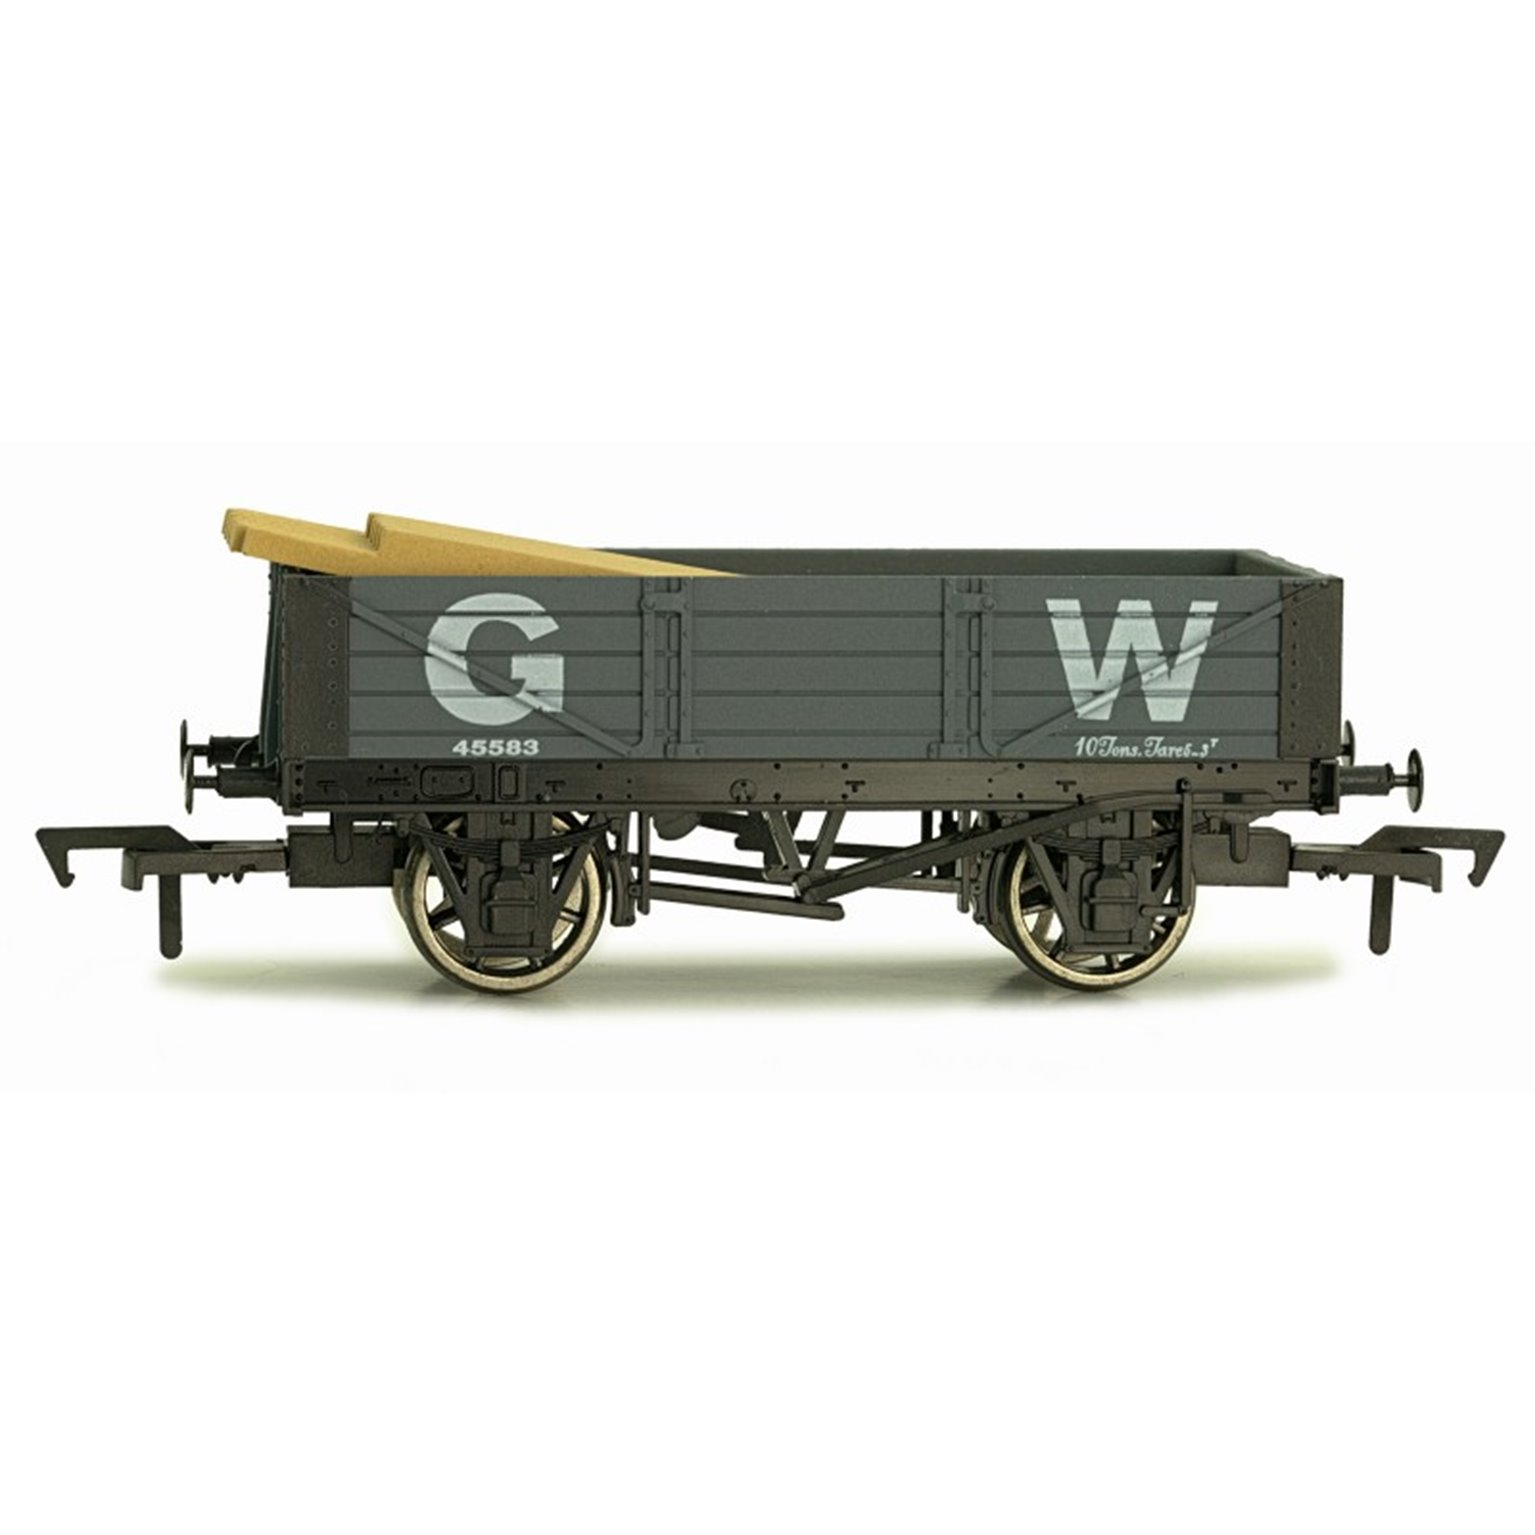 OO GAUGE 4 PLANK WAGON GWR 45583 WEATHERED